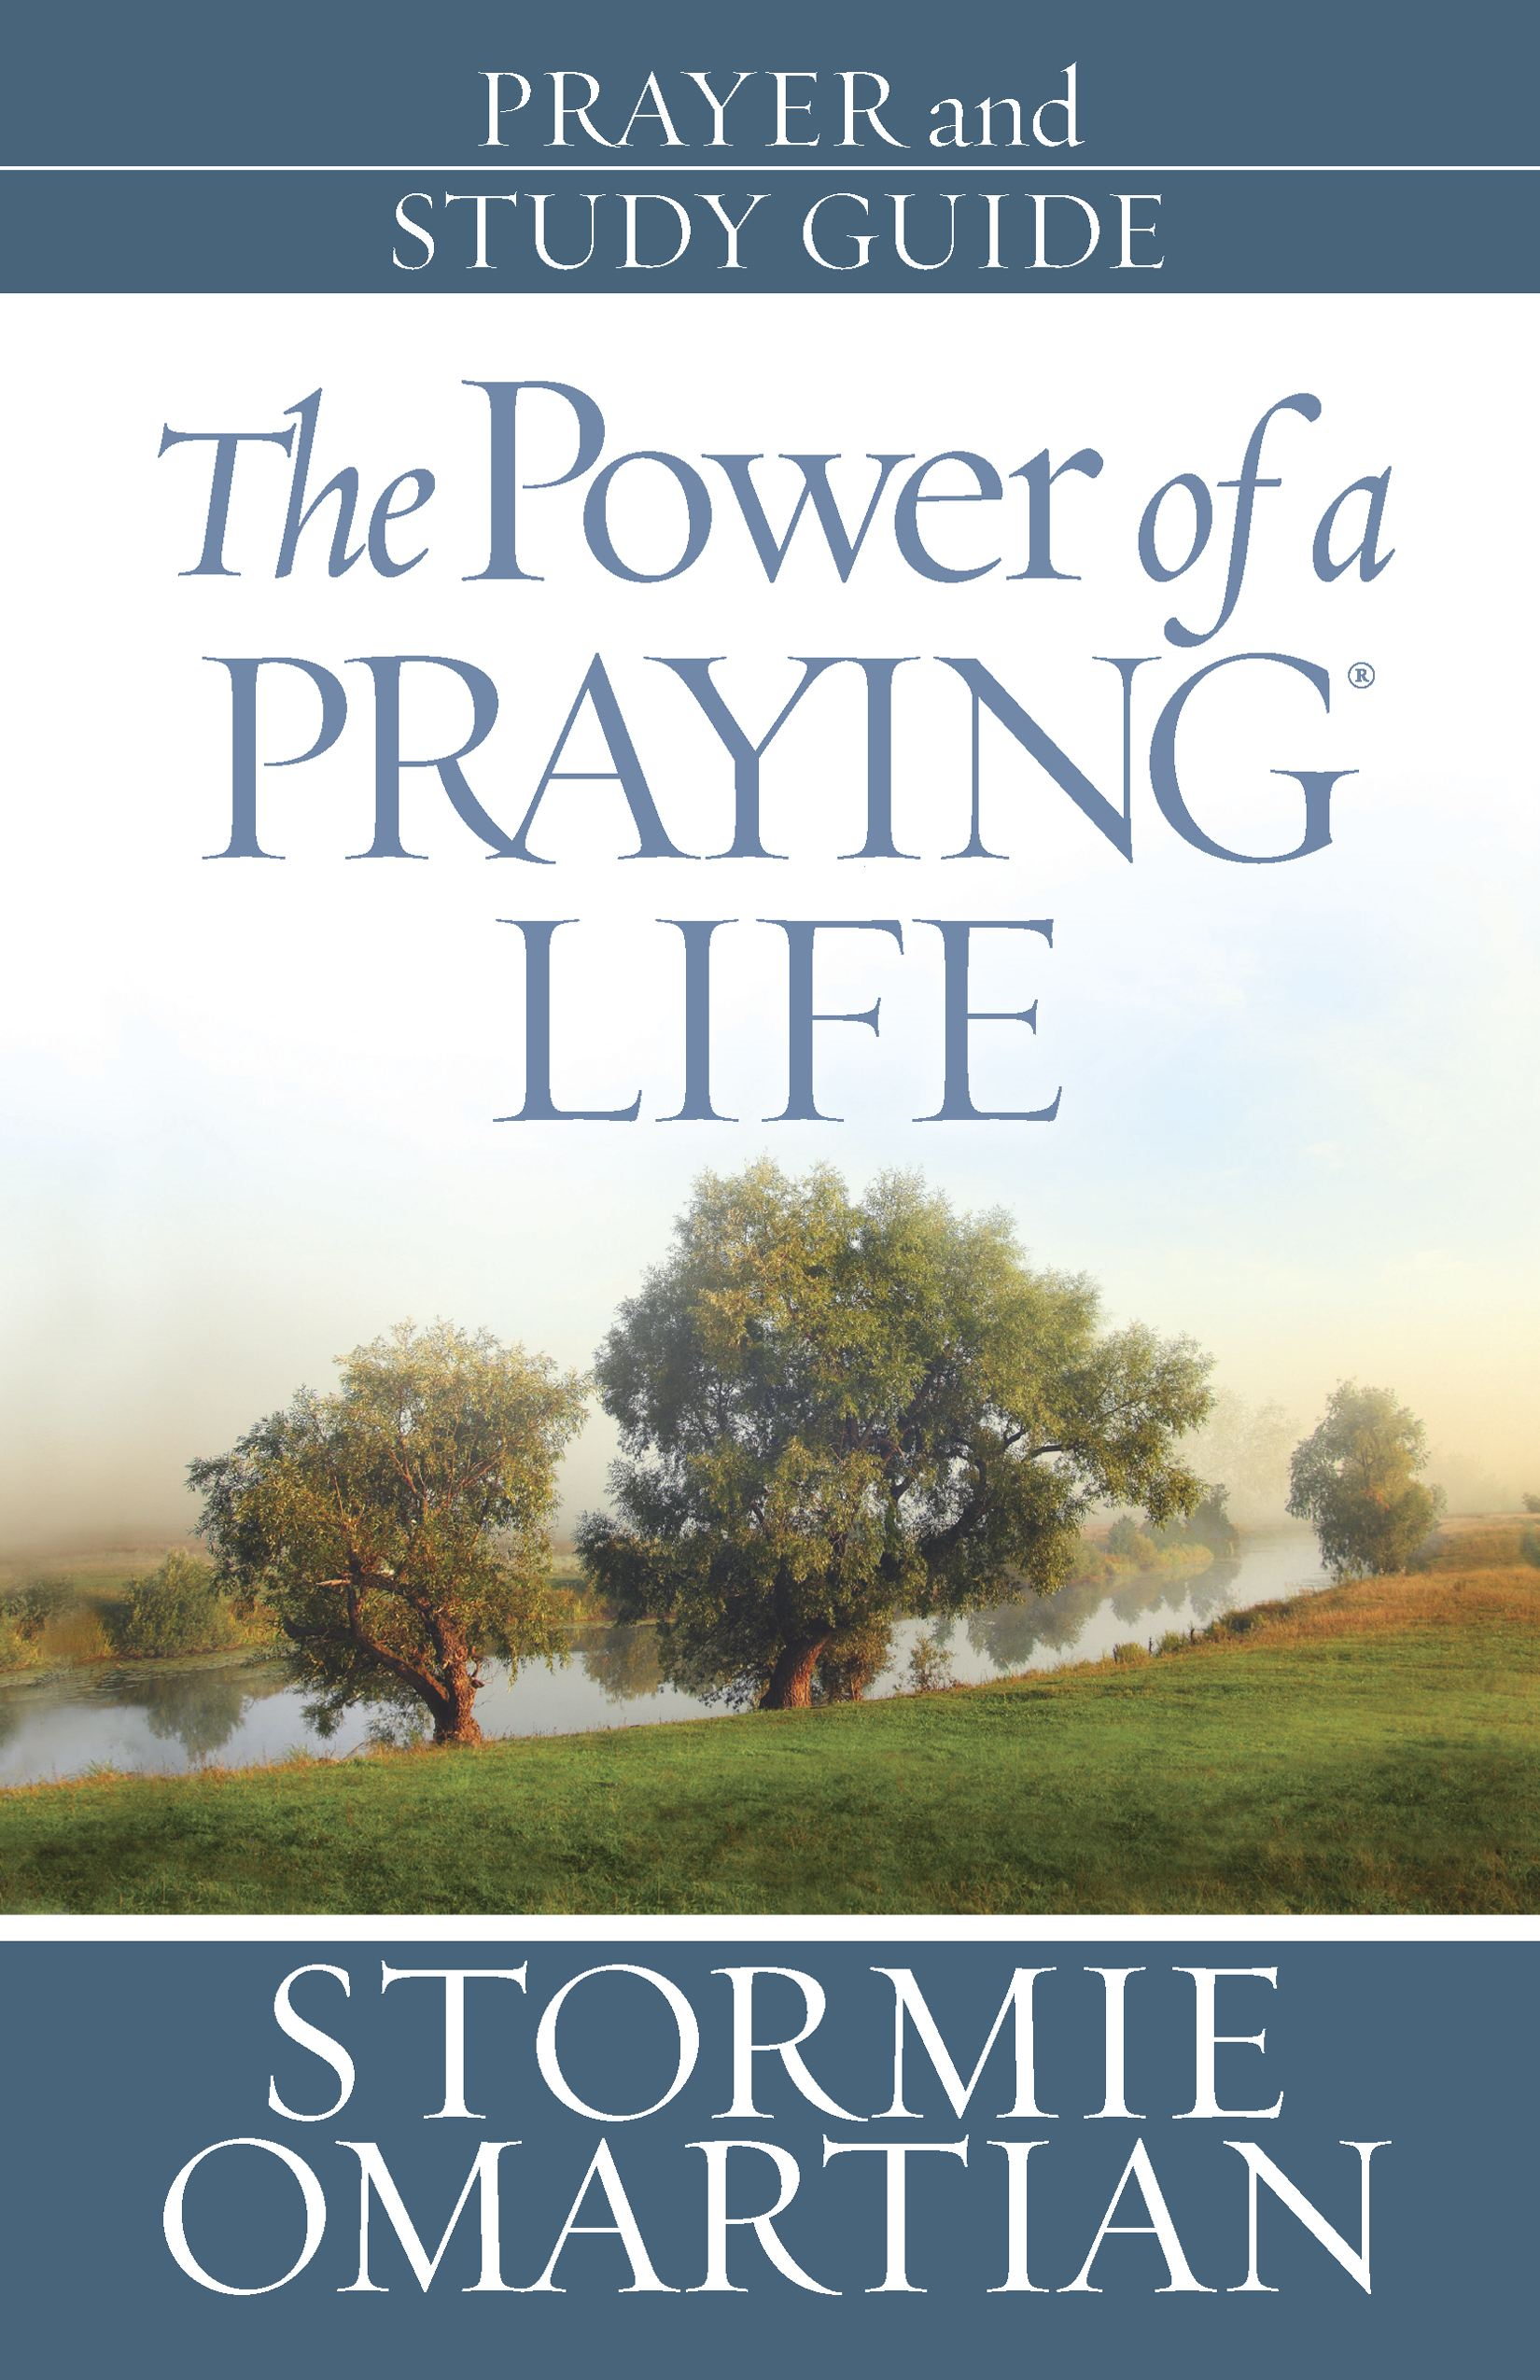 The Power of a Praying® Life Prayer and Study Guide